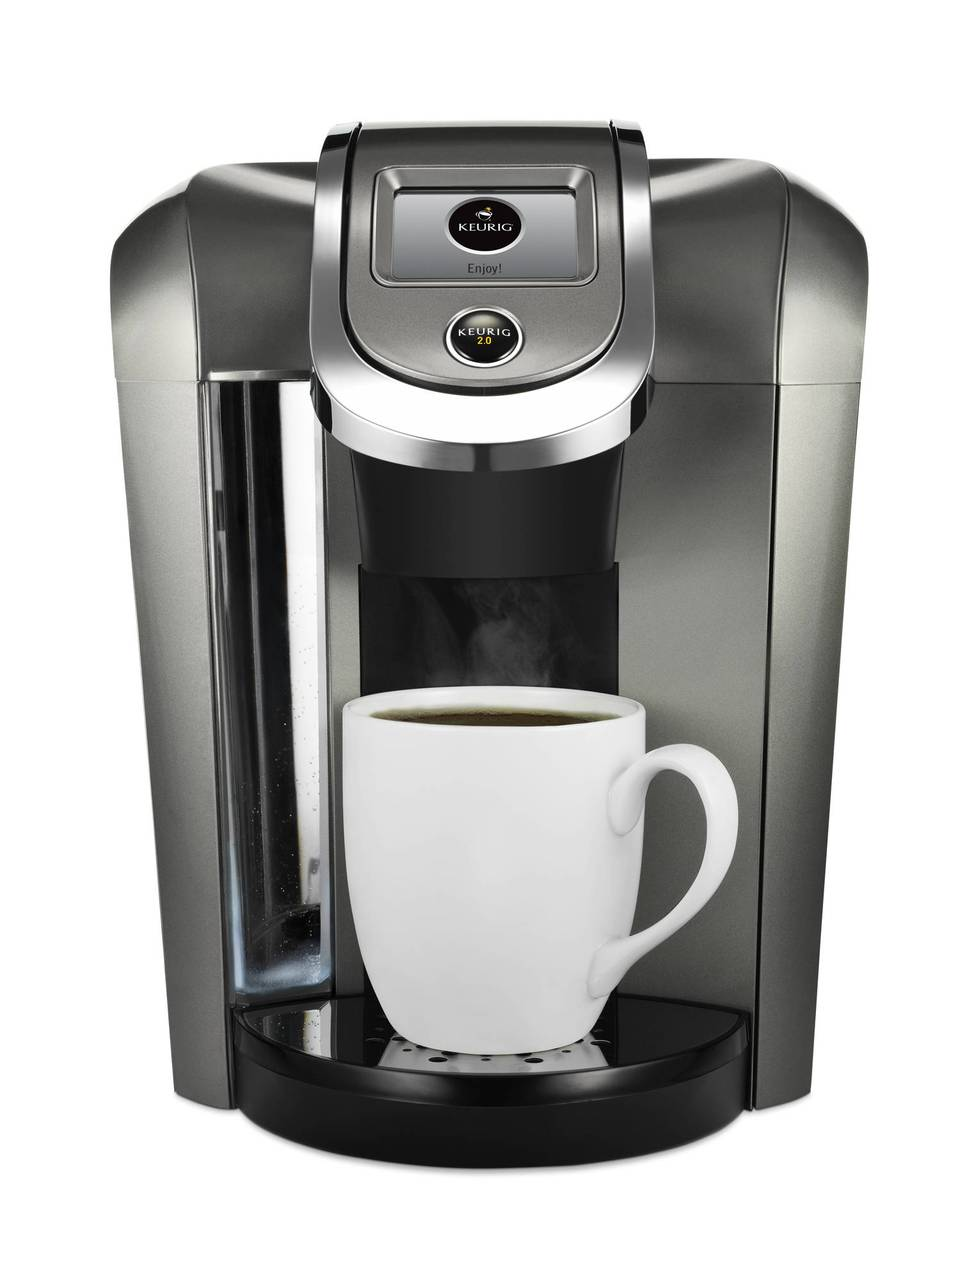 Keurig K550 Coffee Maker